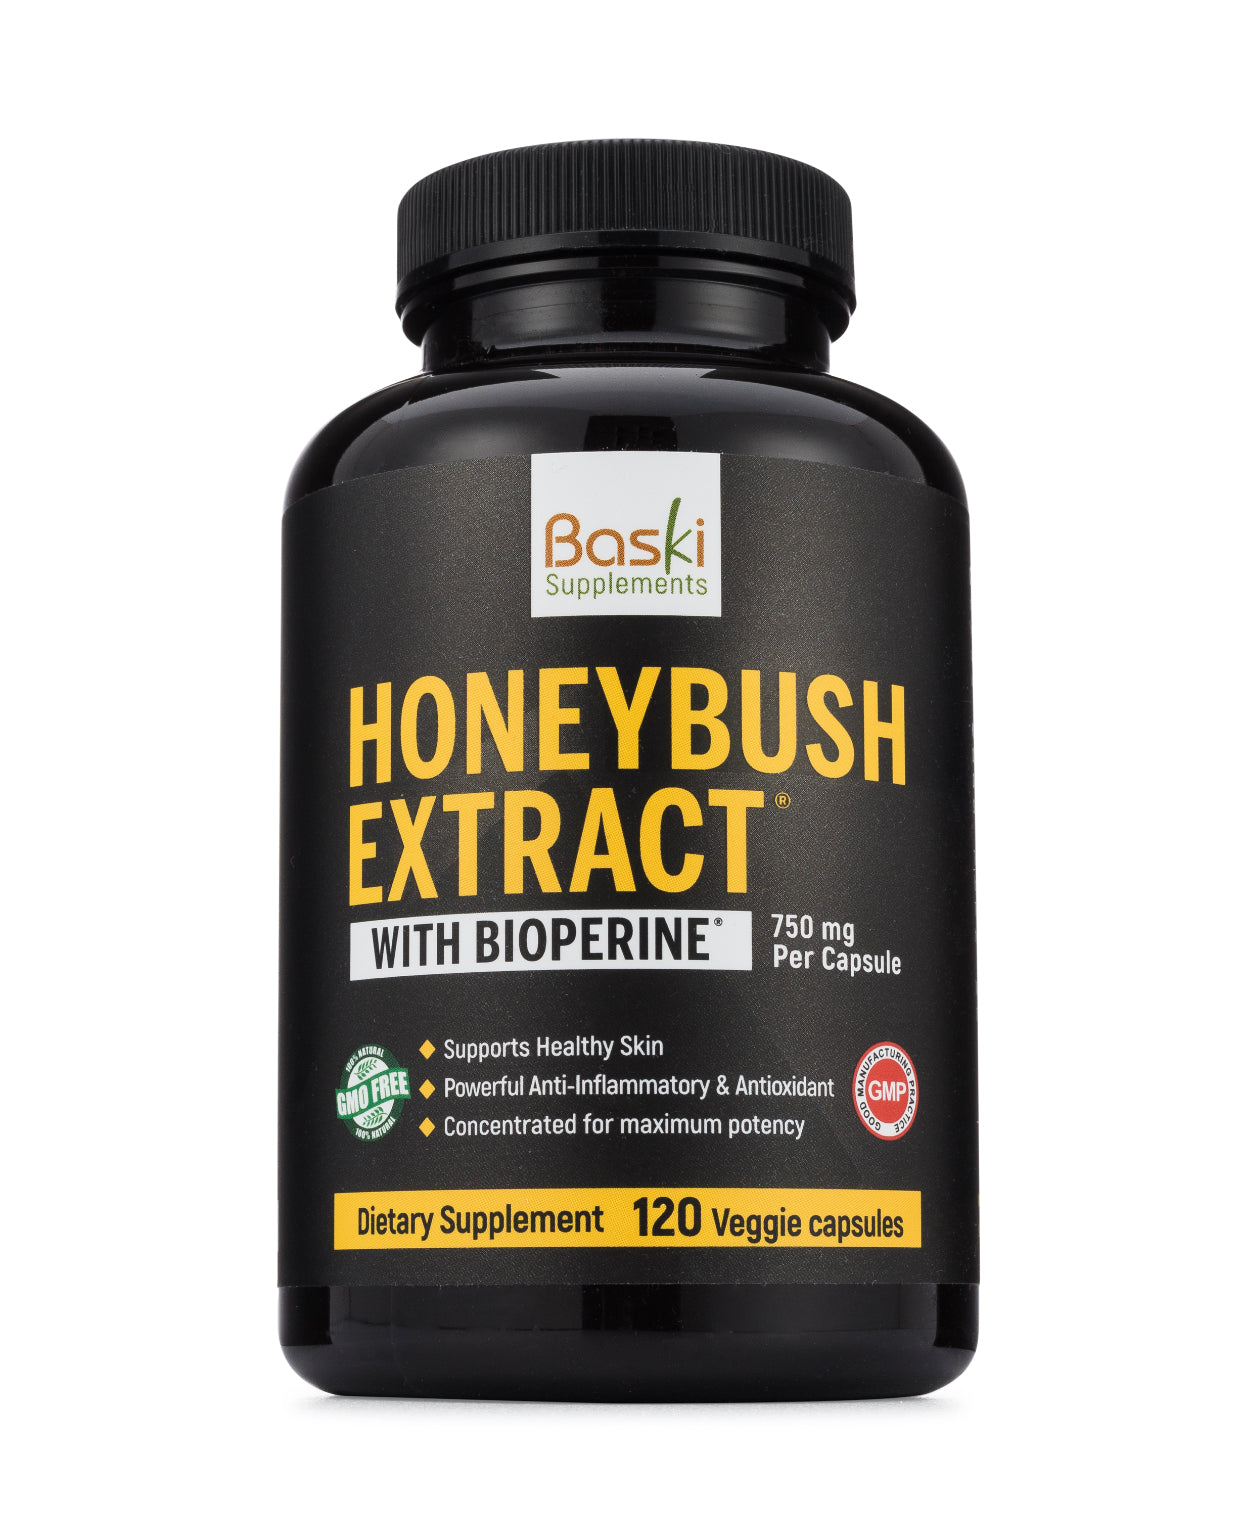 Honeybush Extract supplement for acne, eczema and psoriasis